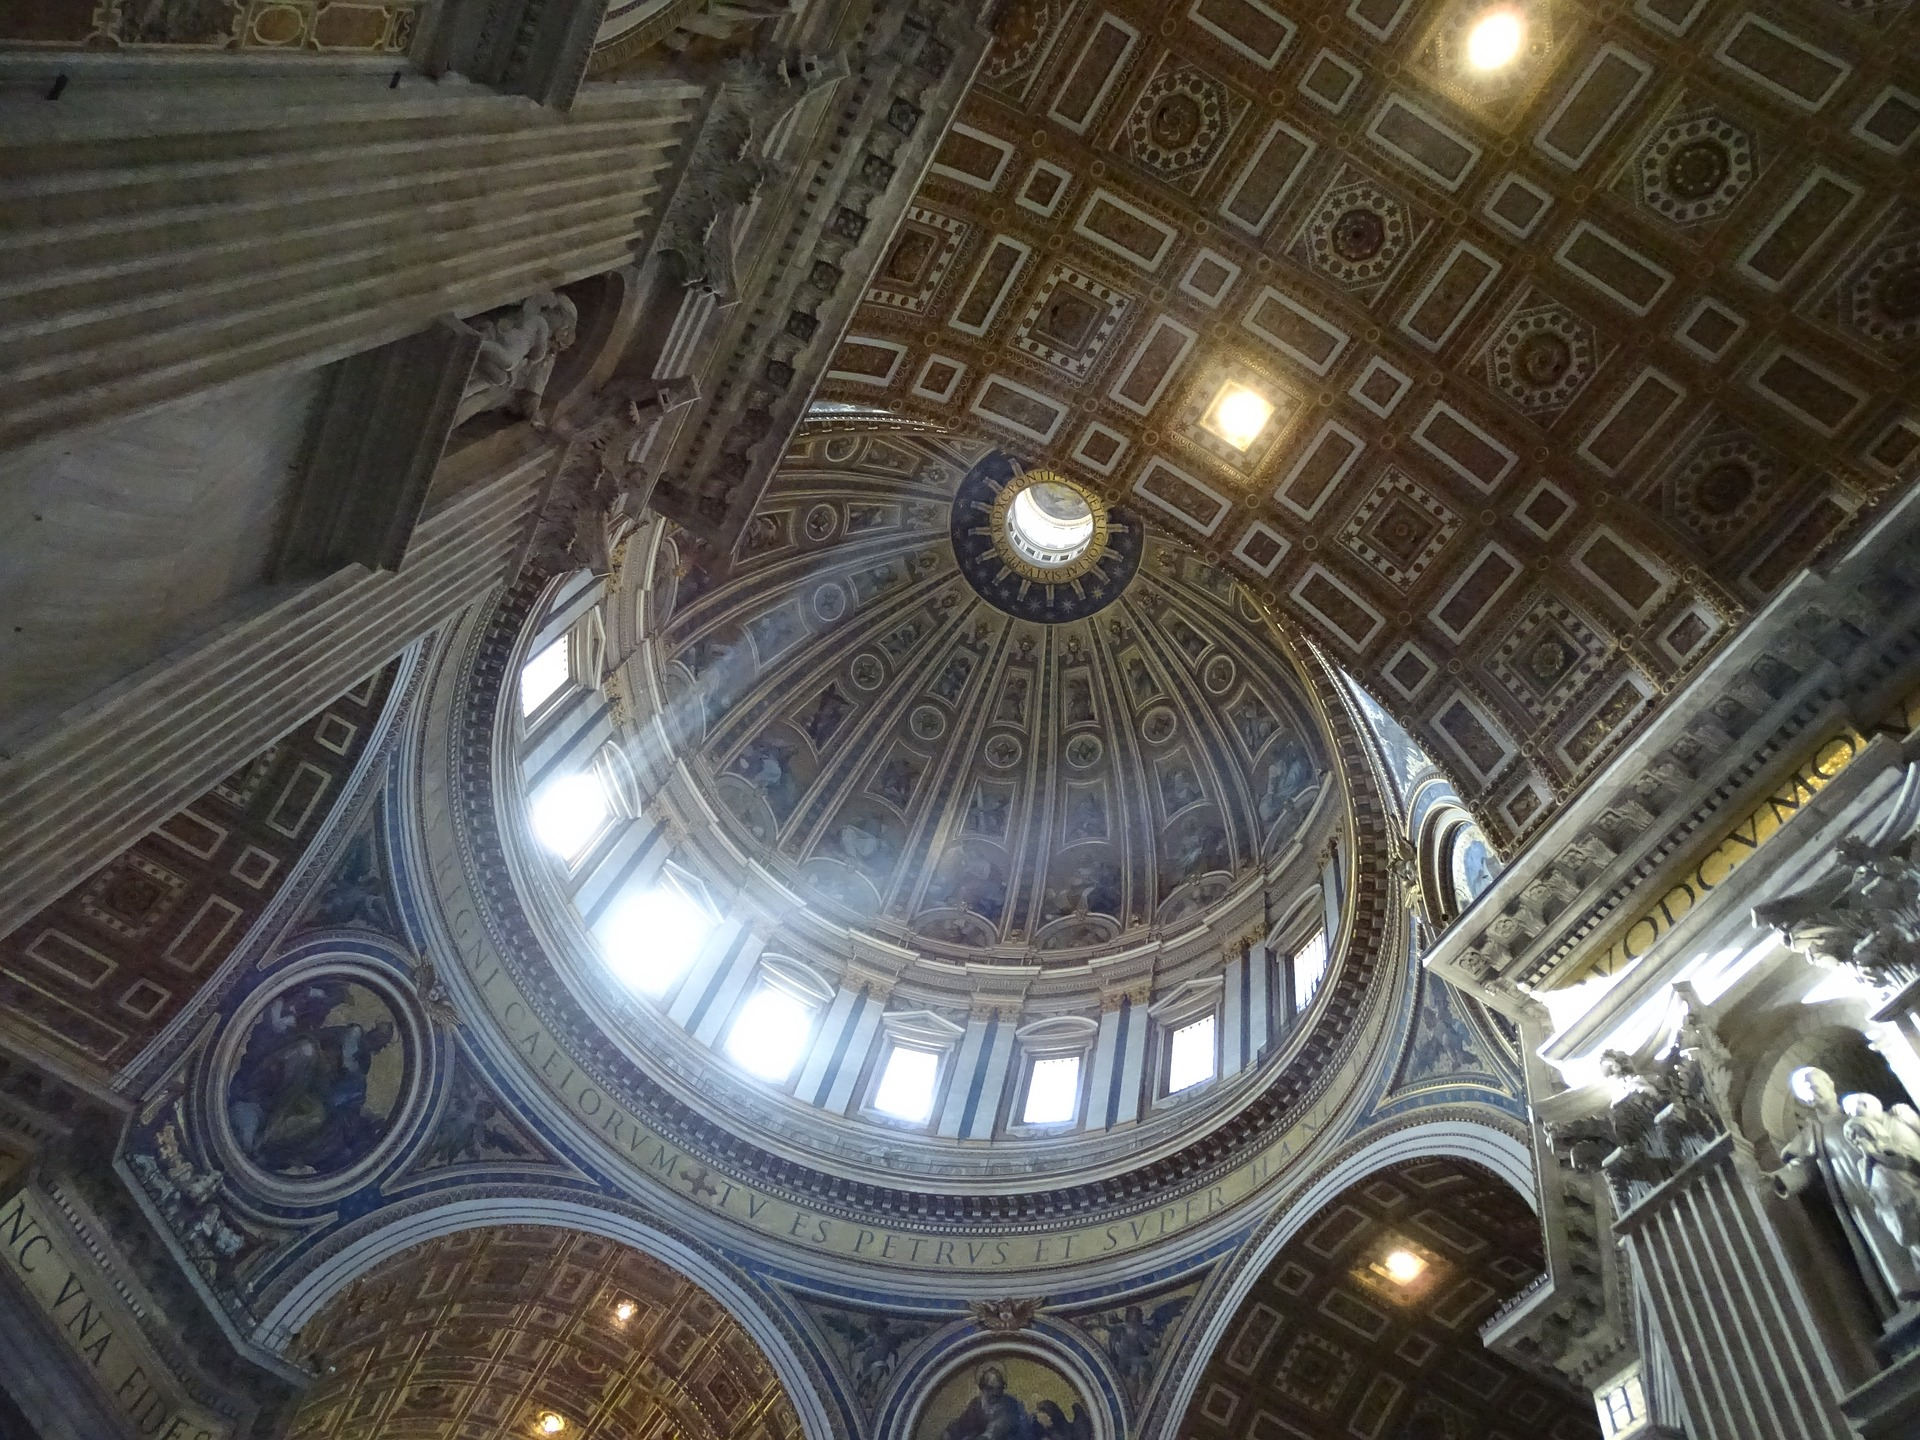 Inside St. Peter's Basilica, Rome